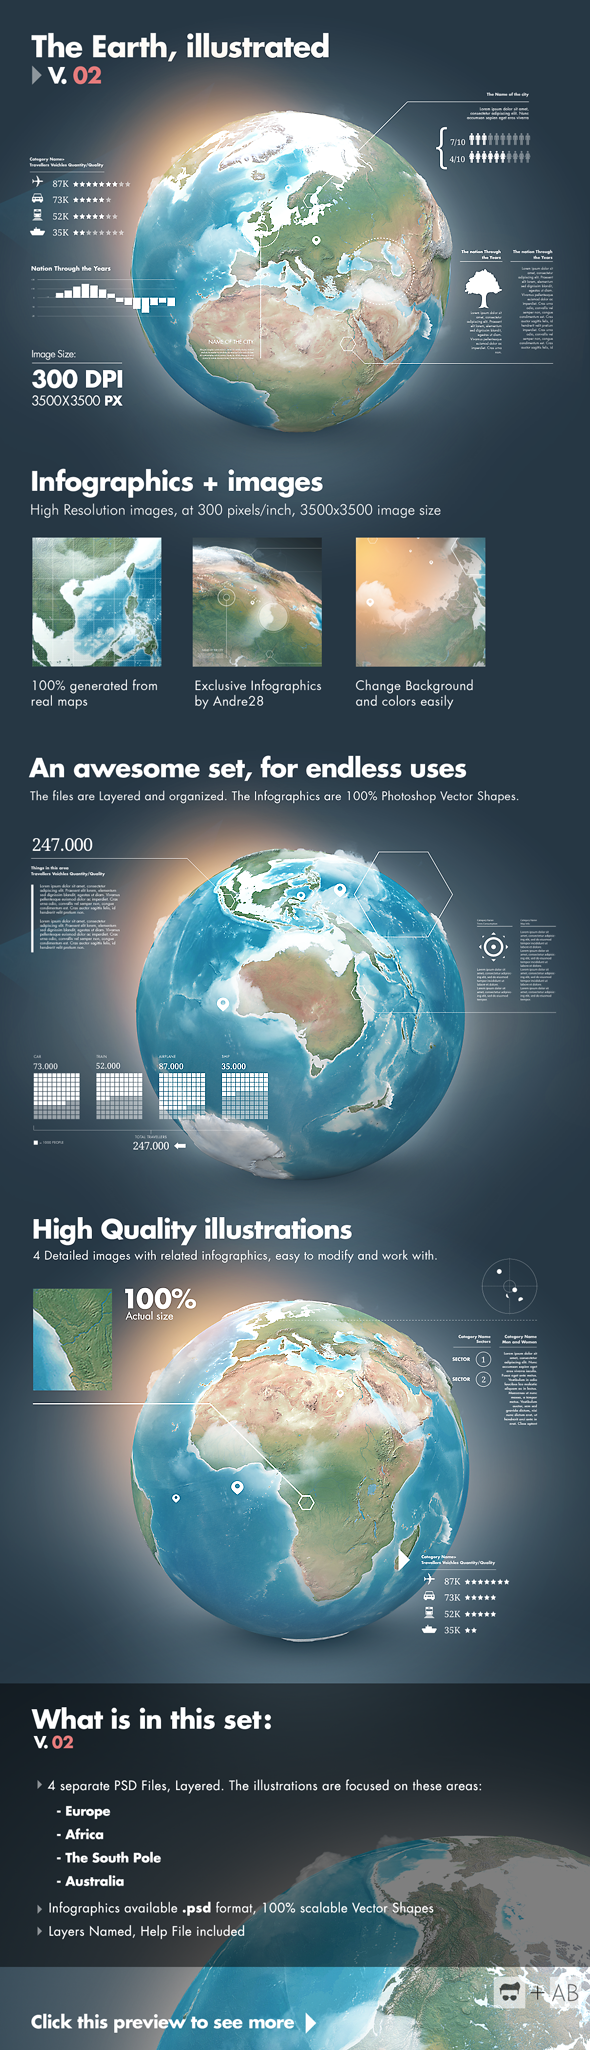 Earth Illustrated, 3D World and Infographics - V2 by Giallo86